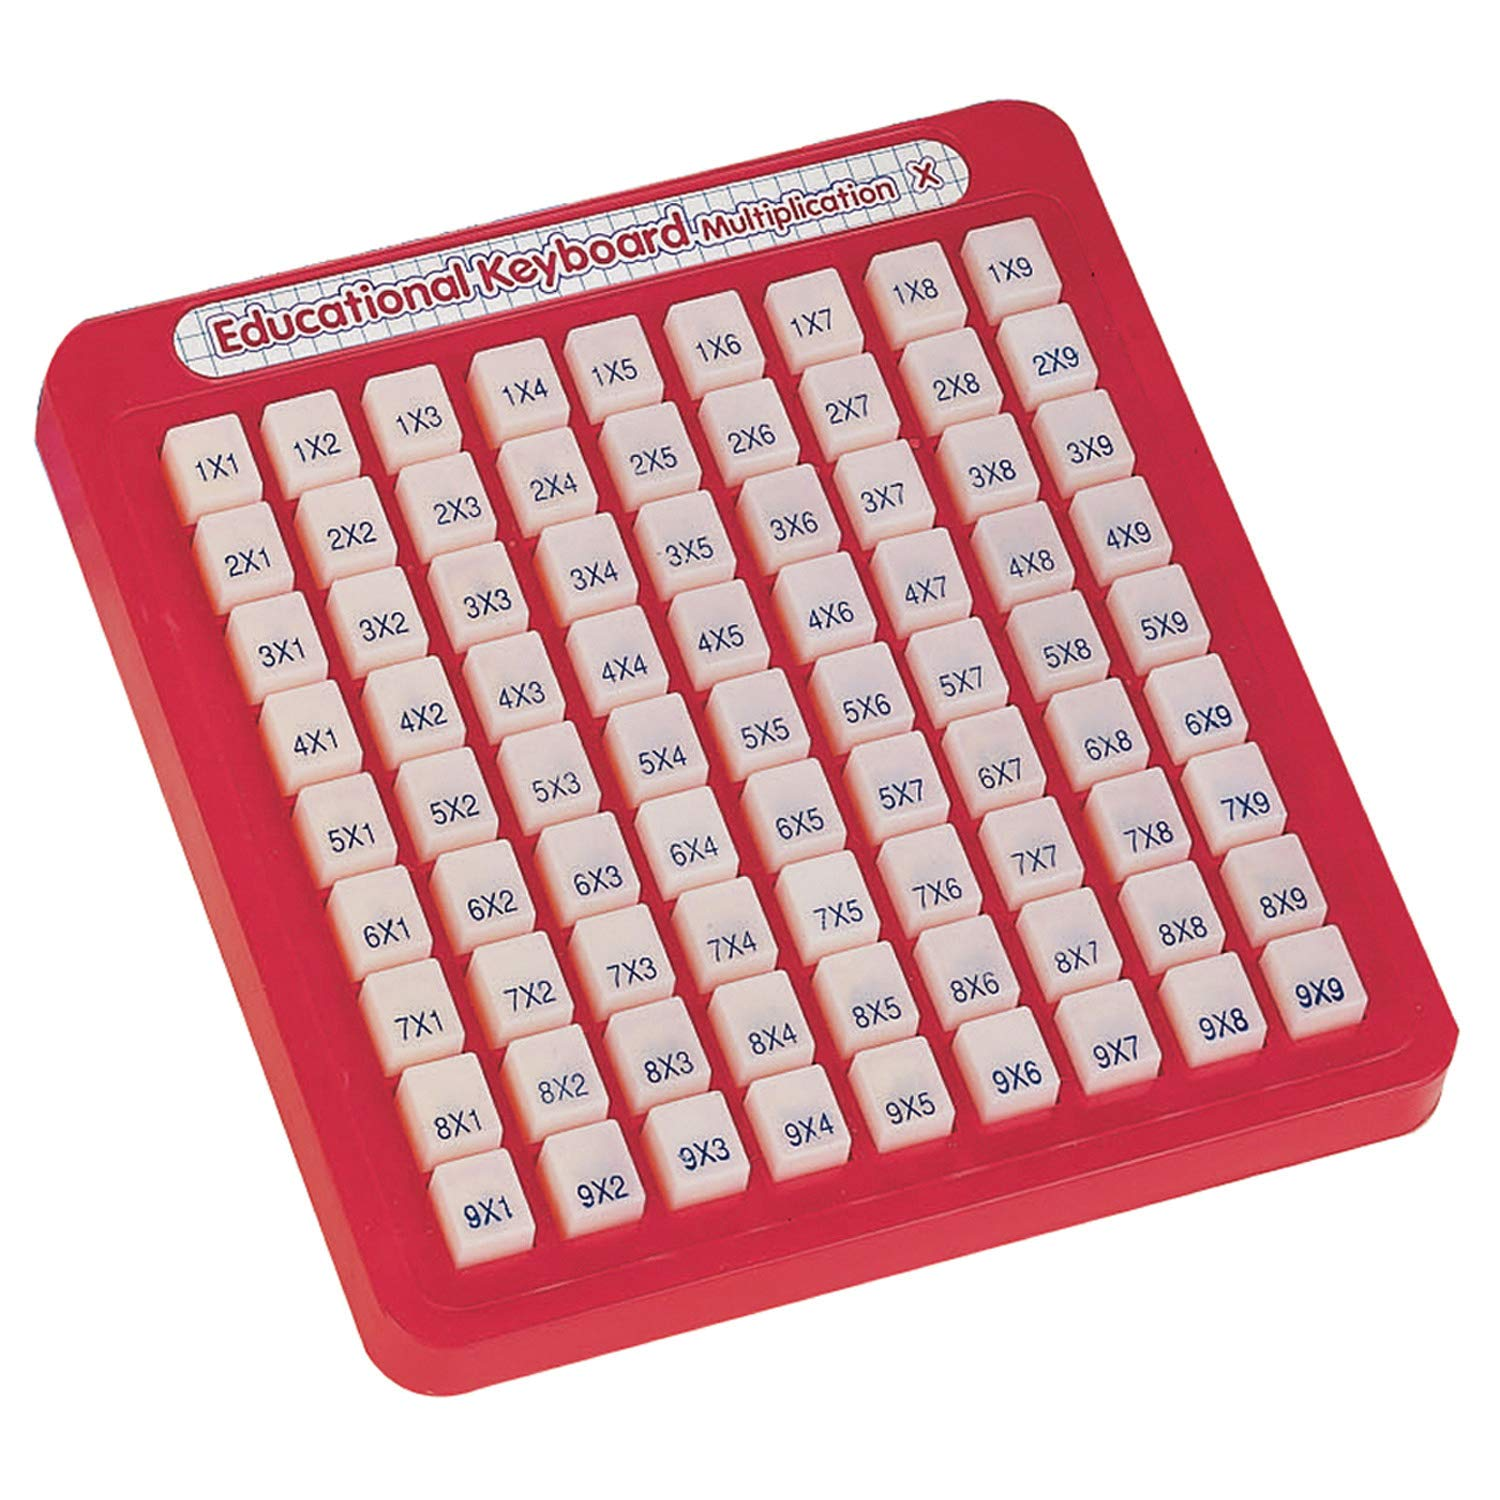 Multiplying Math Keyboard-Math Learning Toys for kids [Age 5-8]